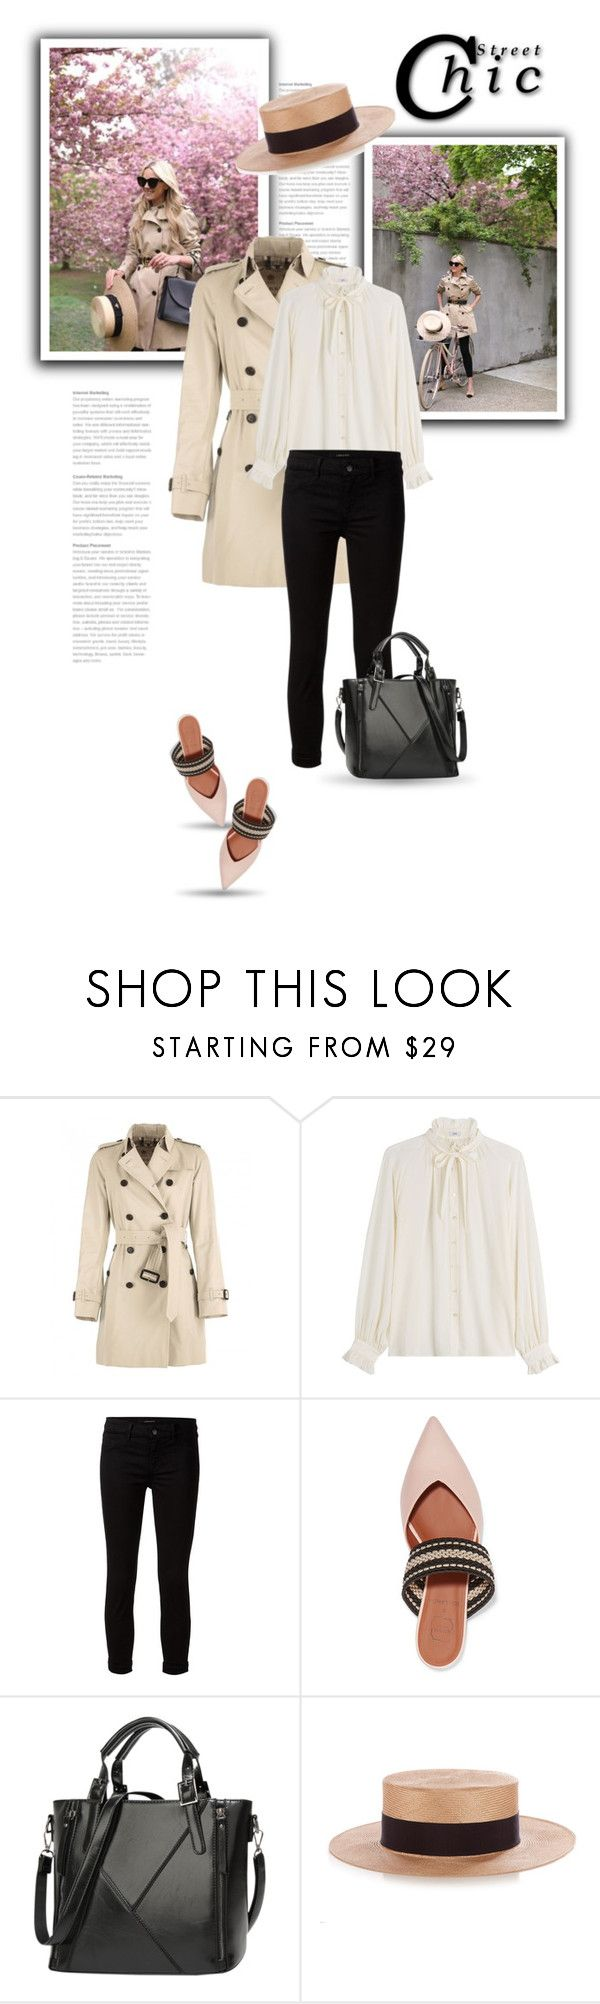 """""""27.04.17"""" by bliznec ❤ liked on Polyvore featuring Burberry, Closed, J Brand, Malone Souliers and Federica Moretti"""